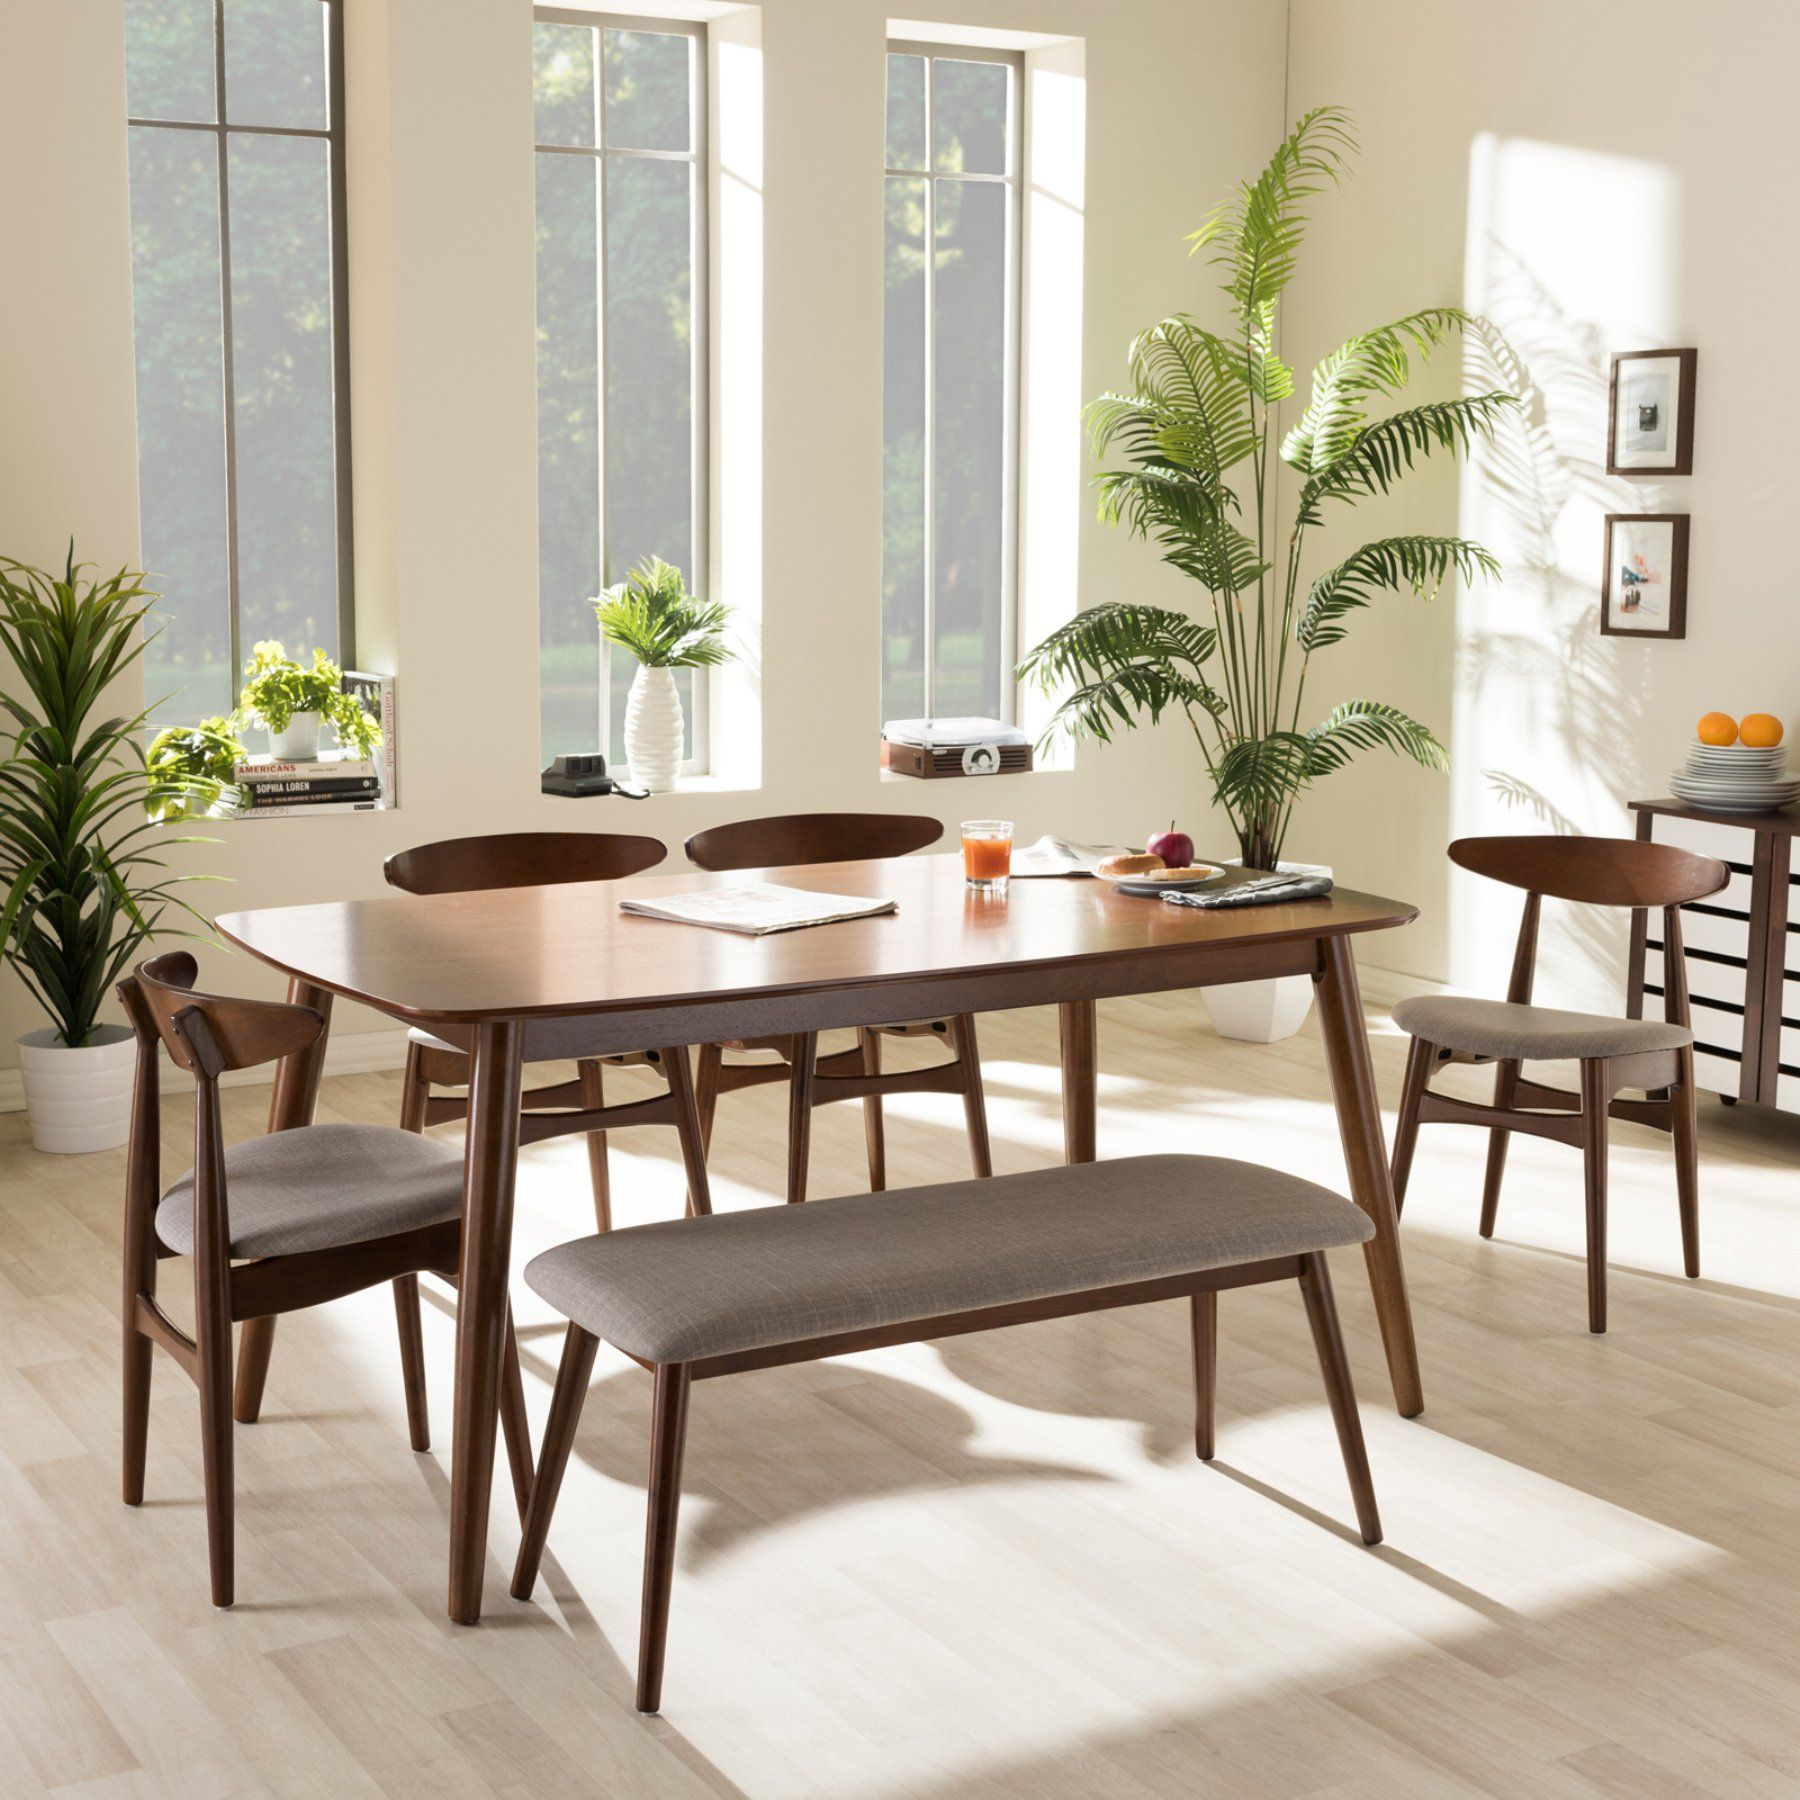 Outstanding Transitional Dining Room Suitable For Any Home: Baxton Studio Flora 6 Piece Dining Table Set